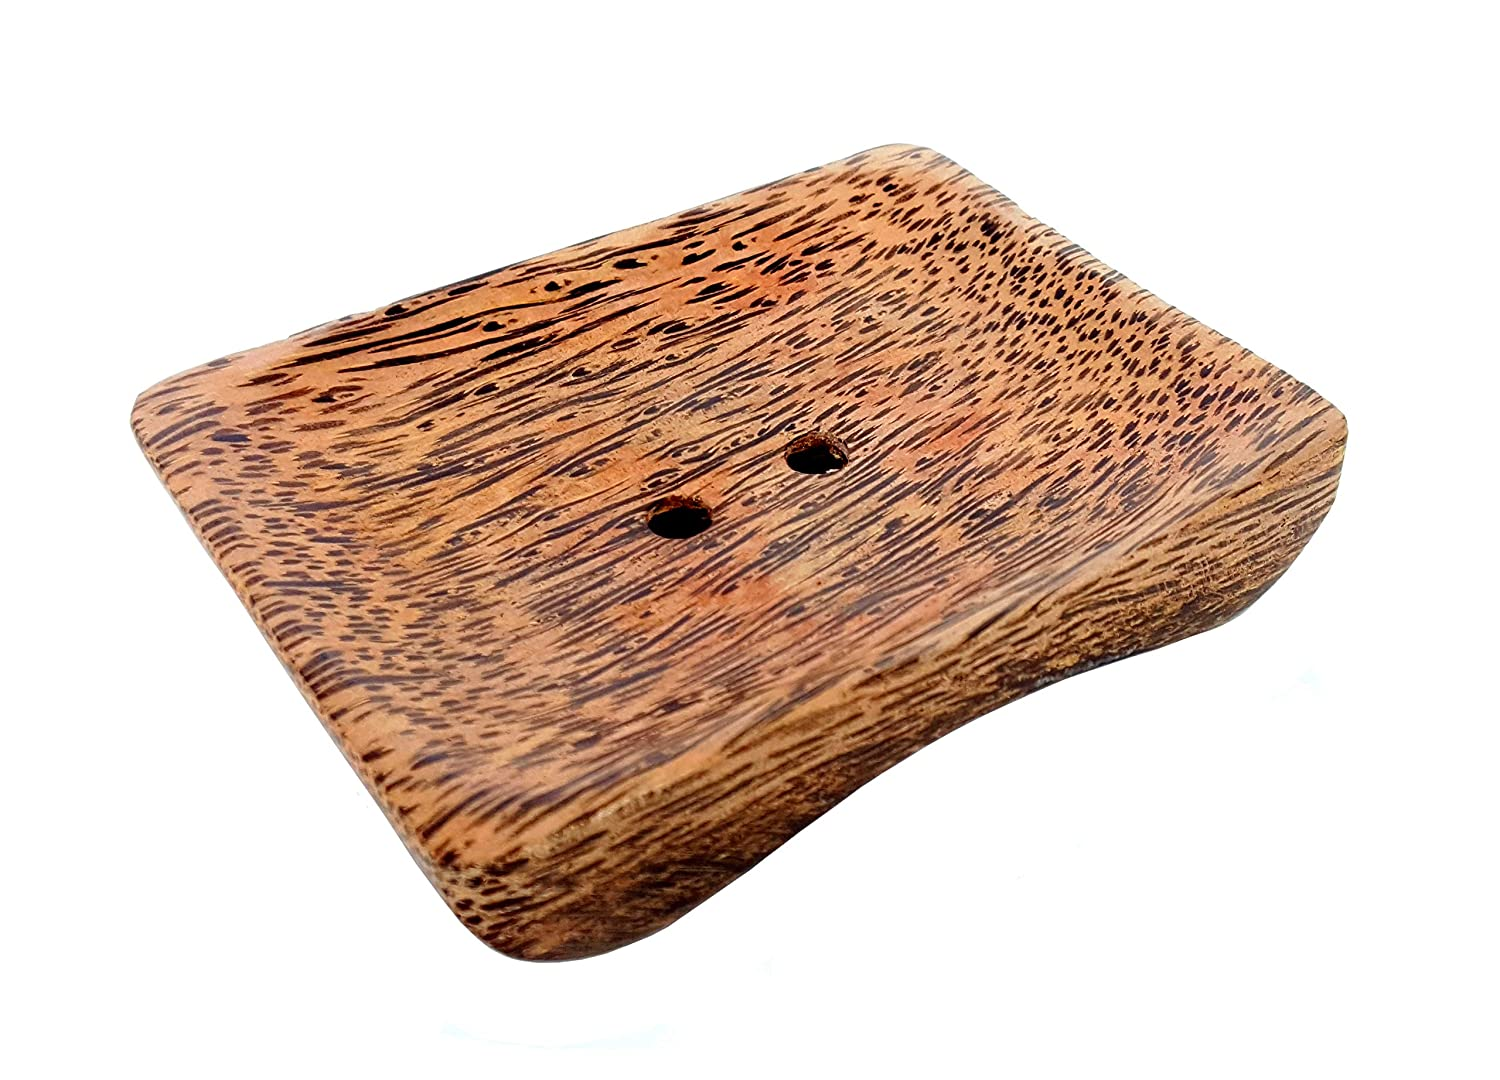 Wooden Soap Case Holder Made of Palm Wood. eSplanade Wooden Soap Dish